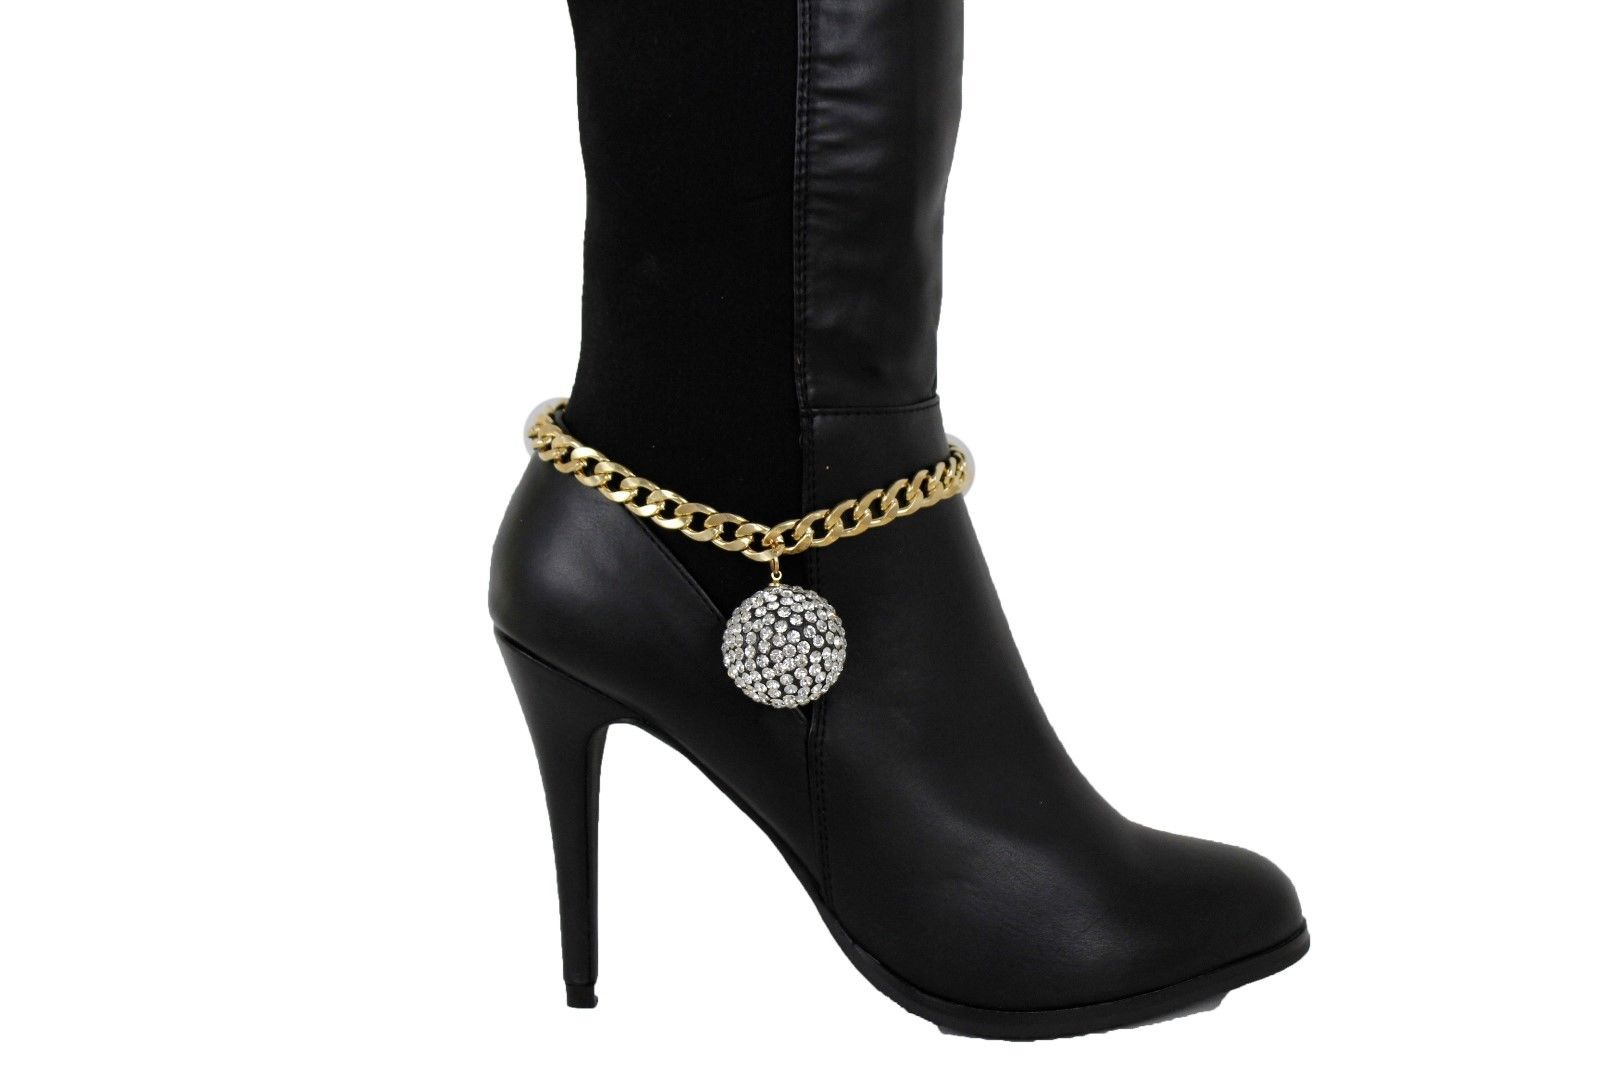 Women Western Boot Bracelet Silver Metal Chain Wide Strap Anklet Shoe Charm Ball Clothing, Shoes & Accessories Women's Accessories